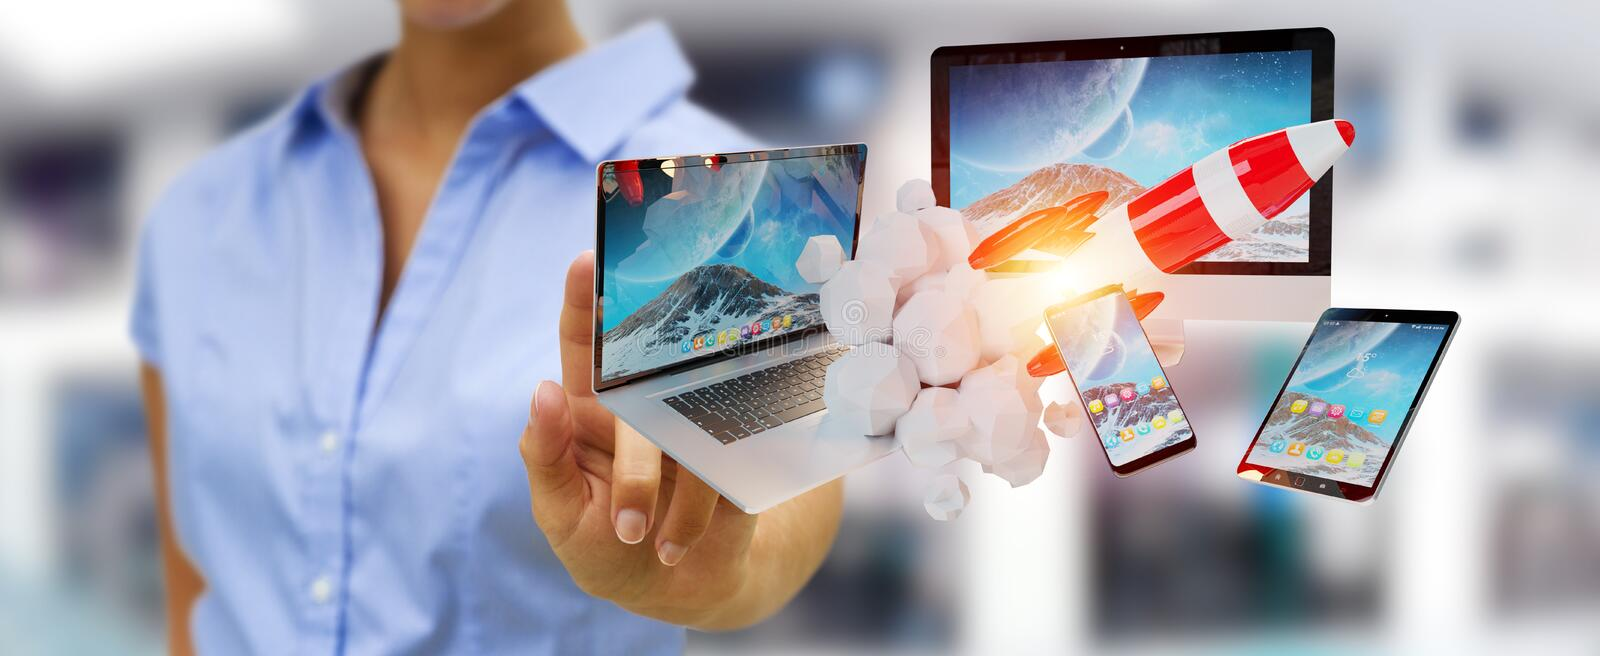 Businesswoman connecting tech devices and startup rocket 3D rend stock illustration